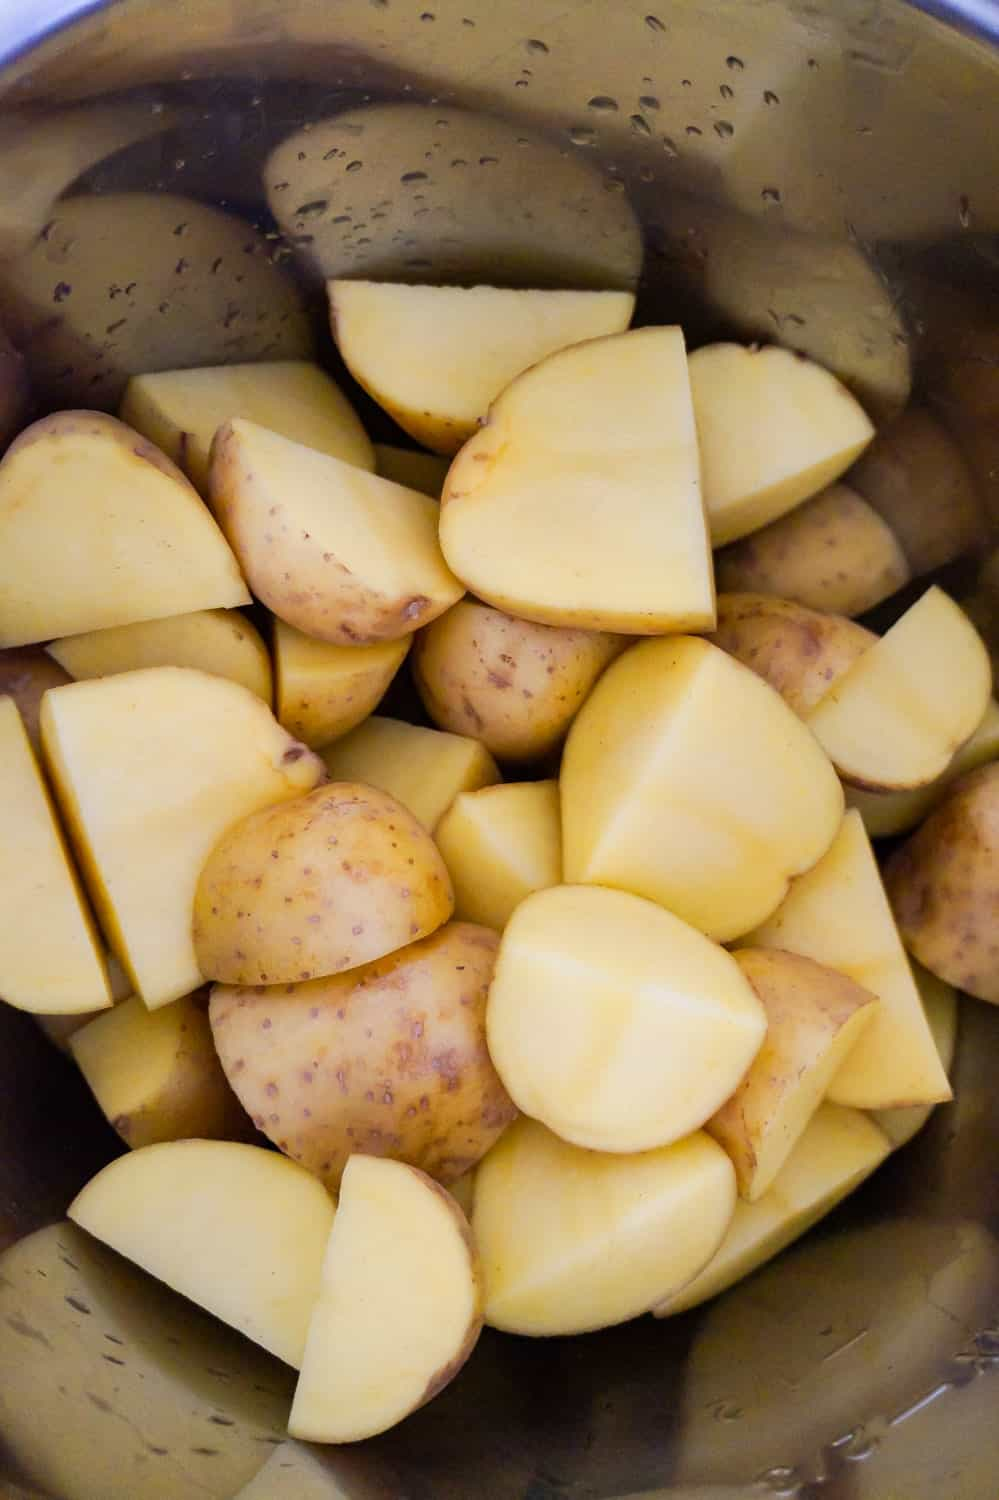 quartered potatoes in an Instant Pot